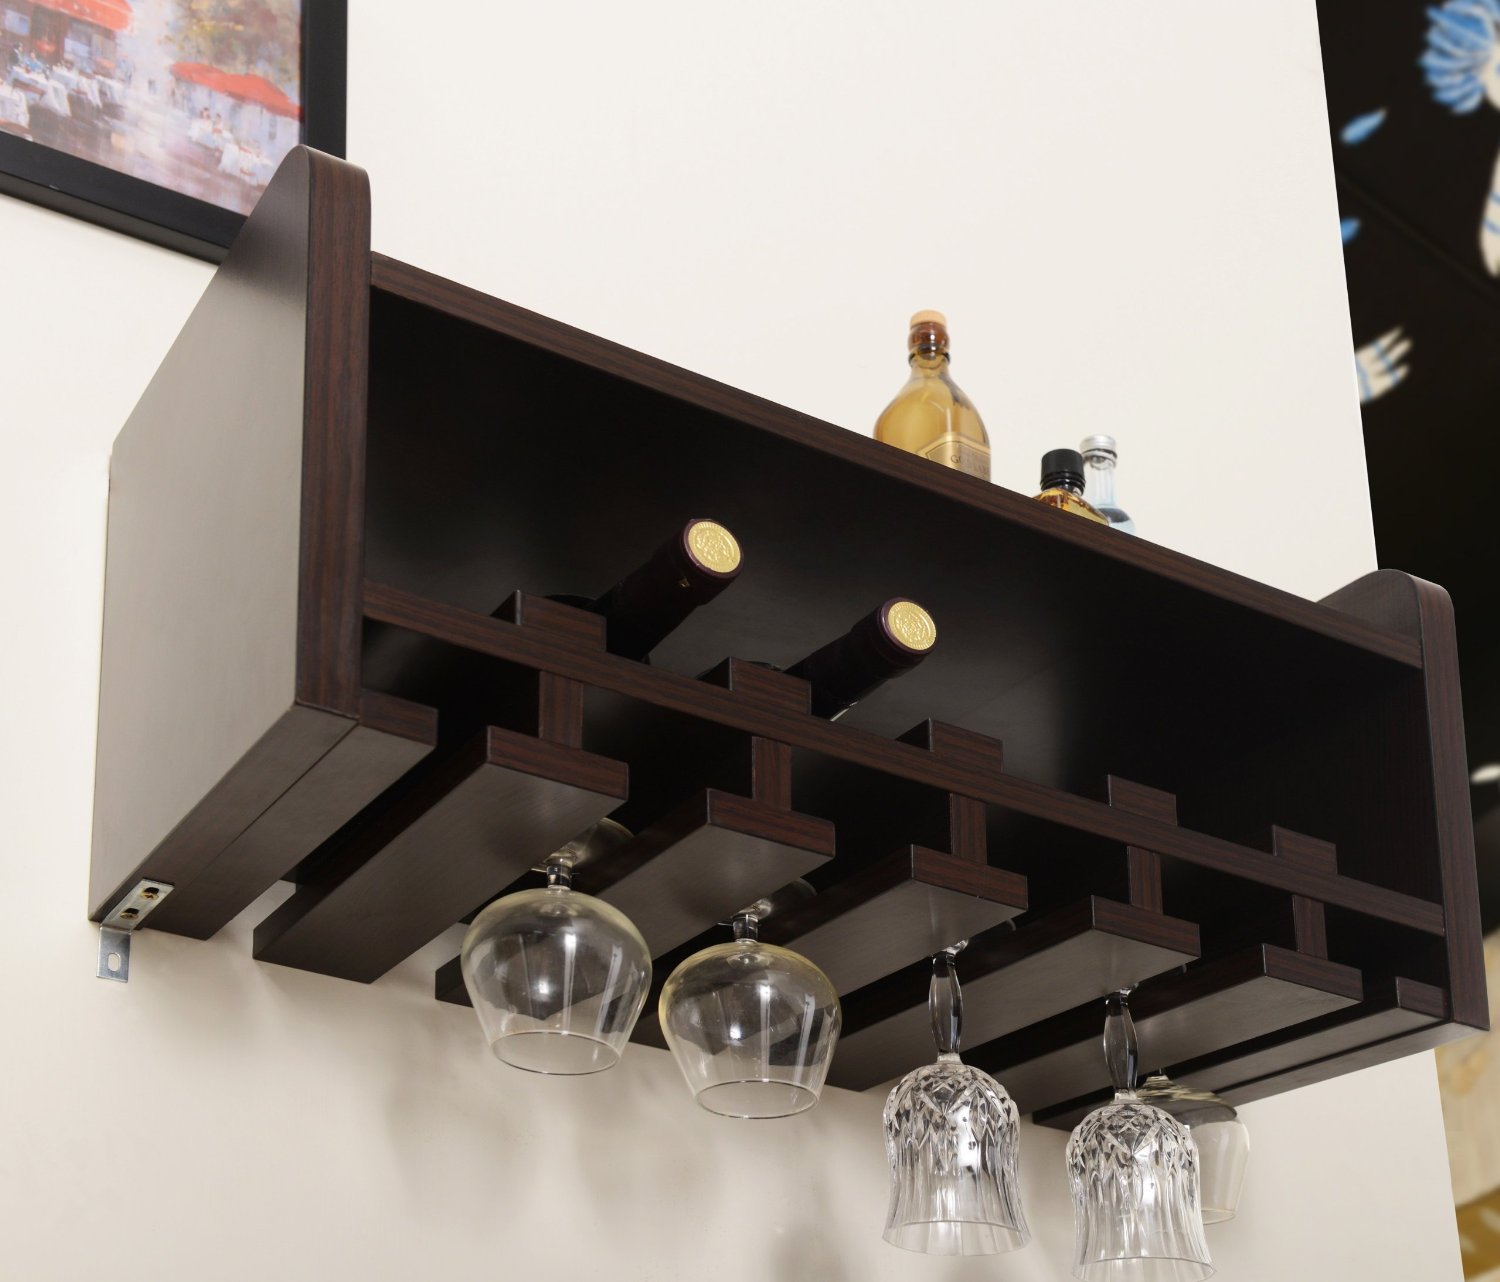 cool wall mounted wine glass holder  homesfeed - wooden black wall glass wine holder on white wall